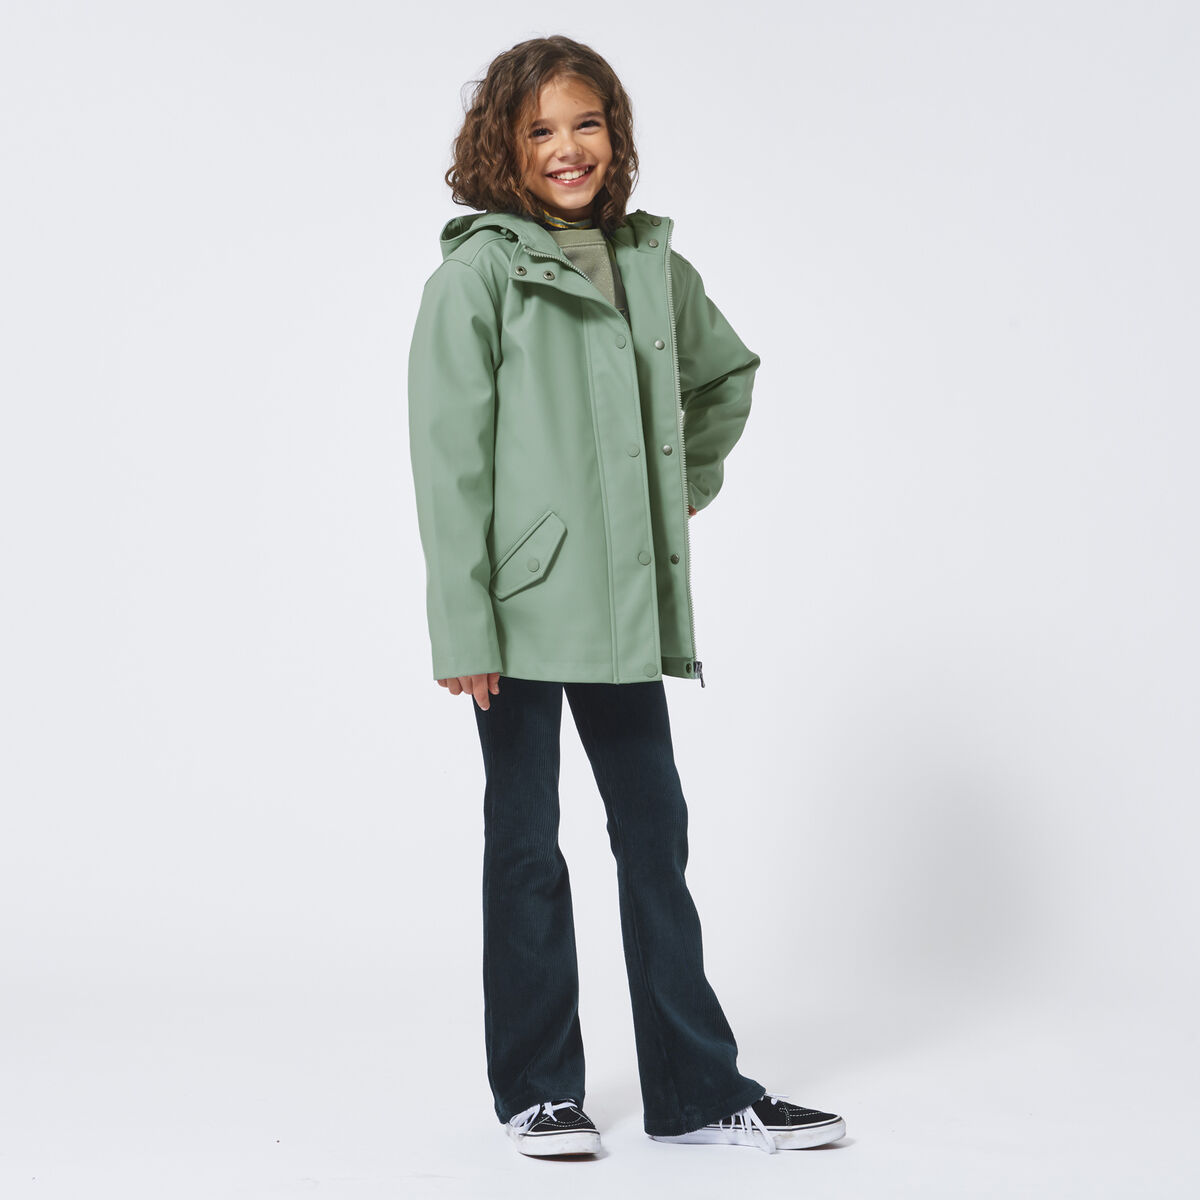 Rain jacket Jade Jr